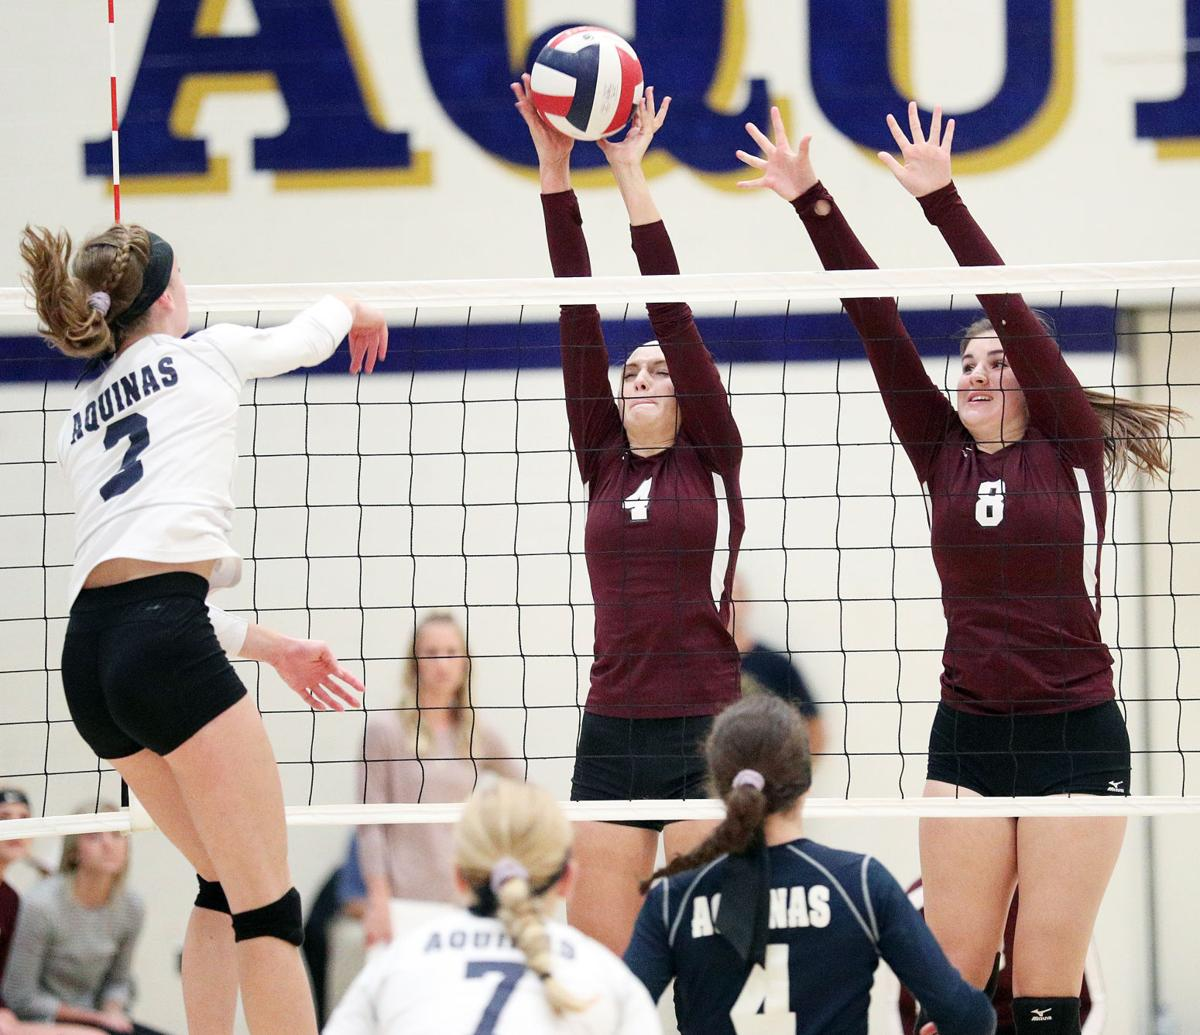 High school volleyball: Blugolds top Vikings in battle for first place